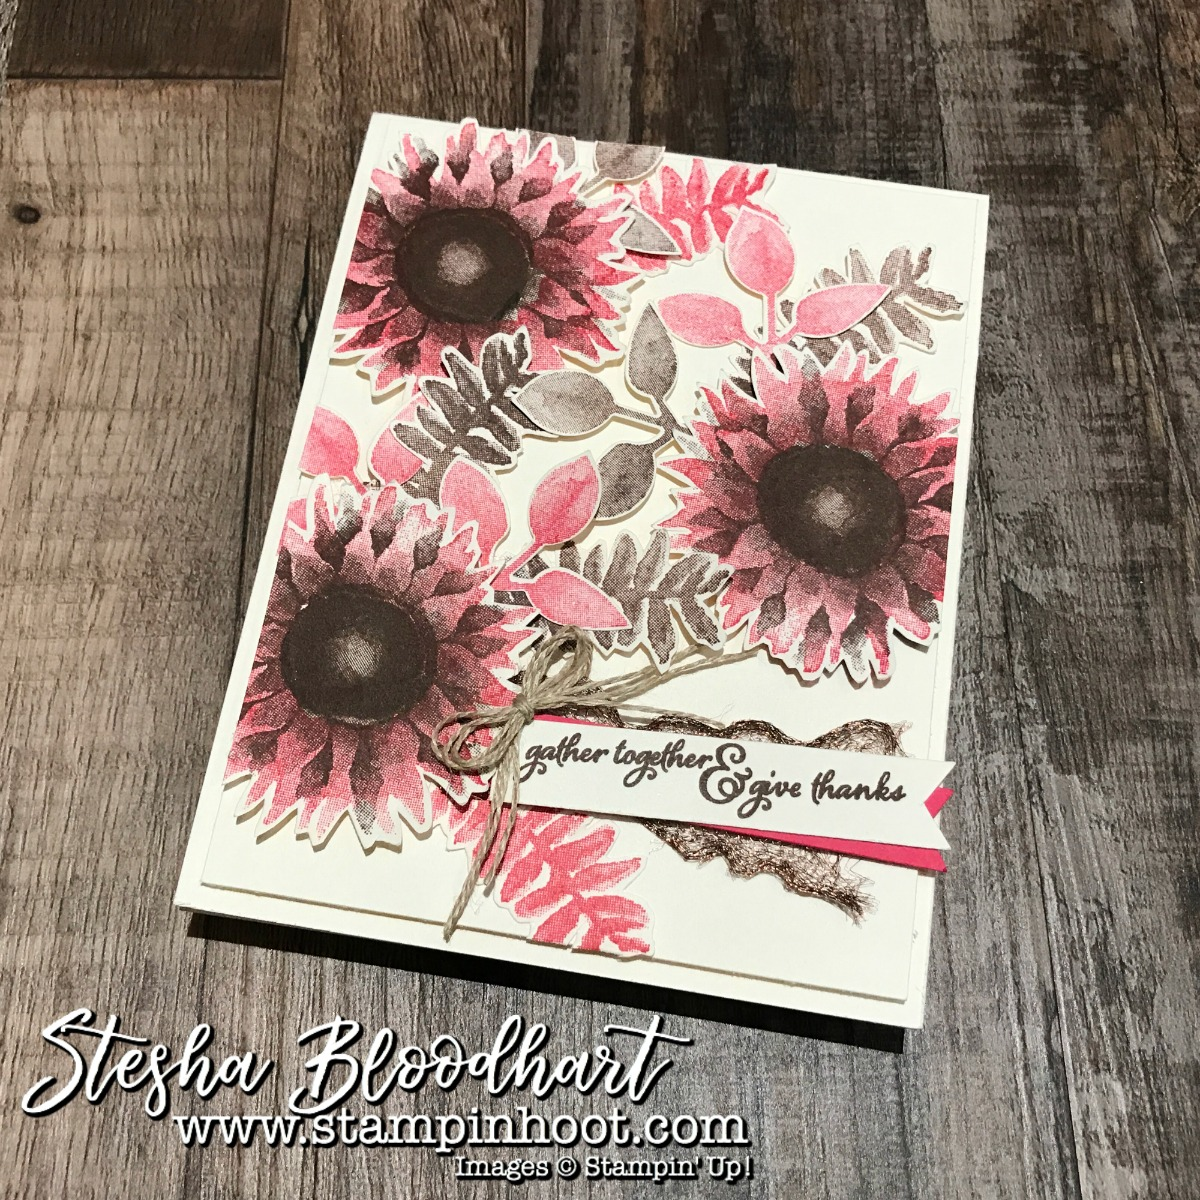 Painted Harvest Bundle by Stampin' Up! Sneak Peek of Thank You Cards designs by Stesha Bloodhart, Stampin' Hoot! #paintedharvest #thankyoucards #handmadecards #cardmaking #stampinup #sunflowers #stampinhoot #demonstrator